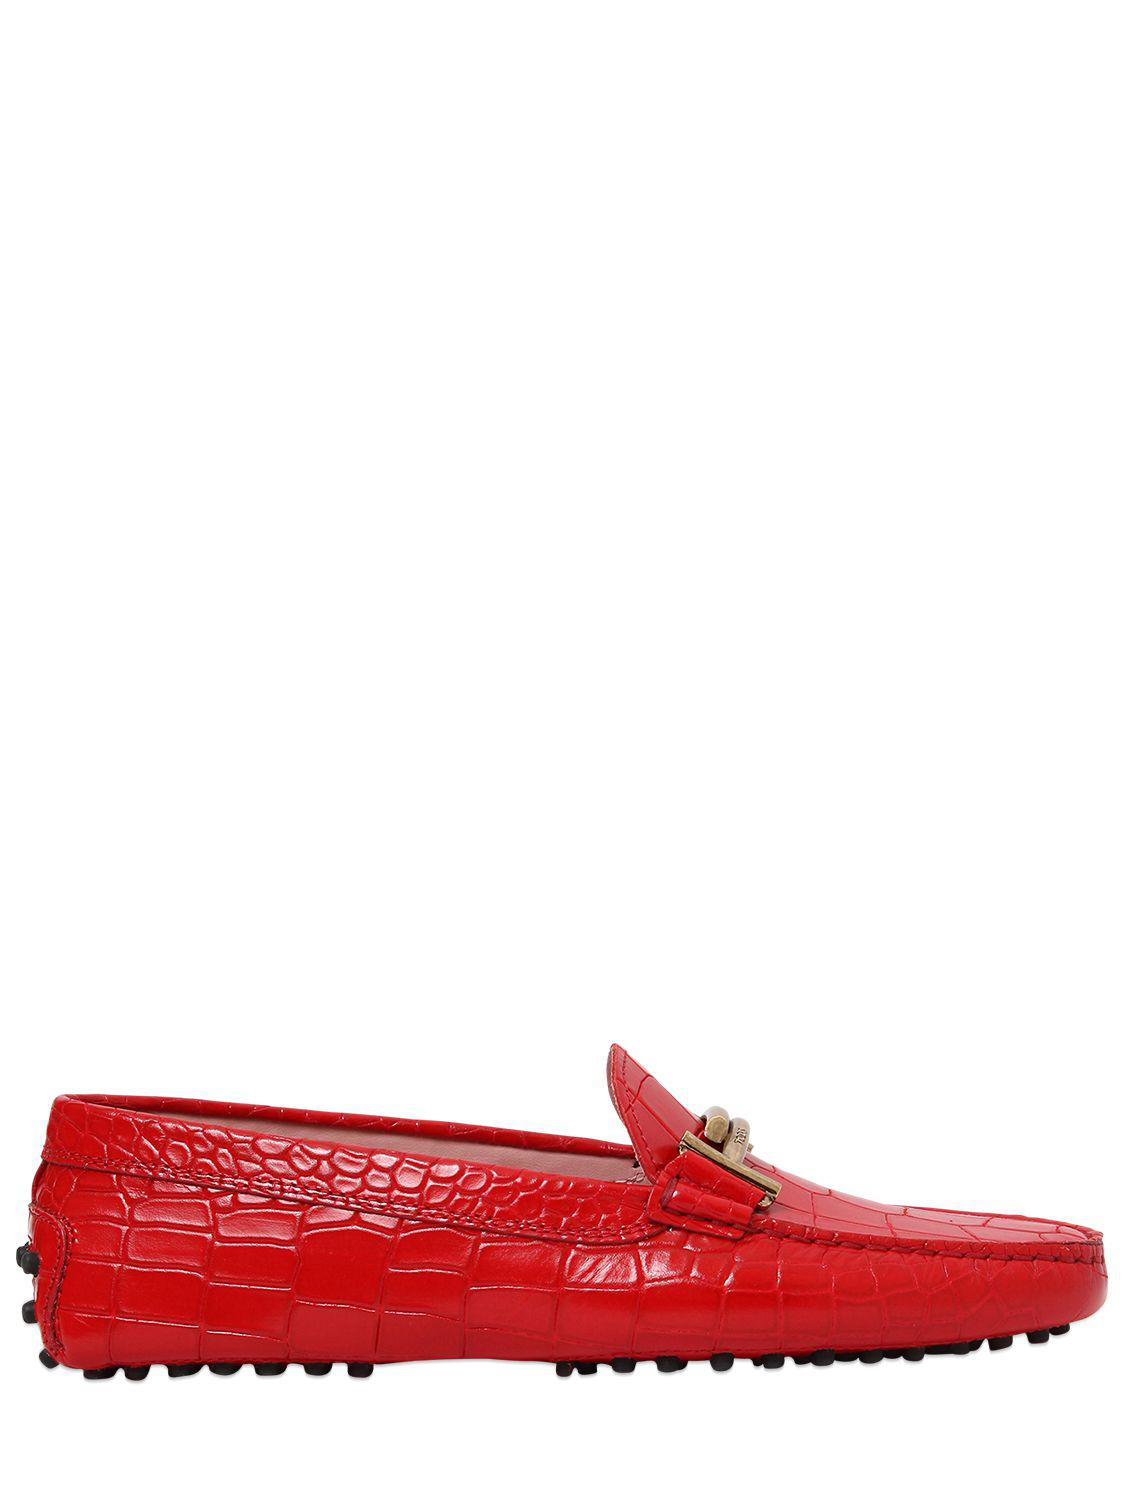 Double T Gommino Printed Moccasins in Red Croc Print Calfskin Tod's UshSjigIw3